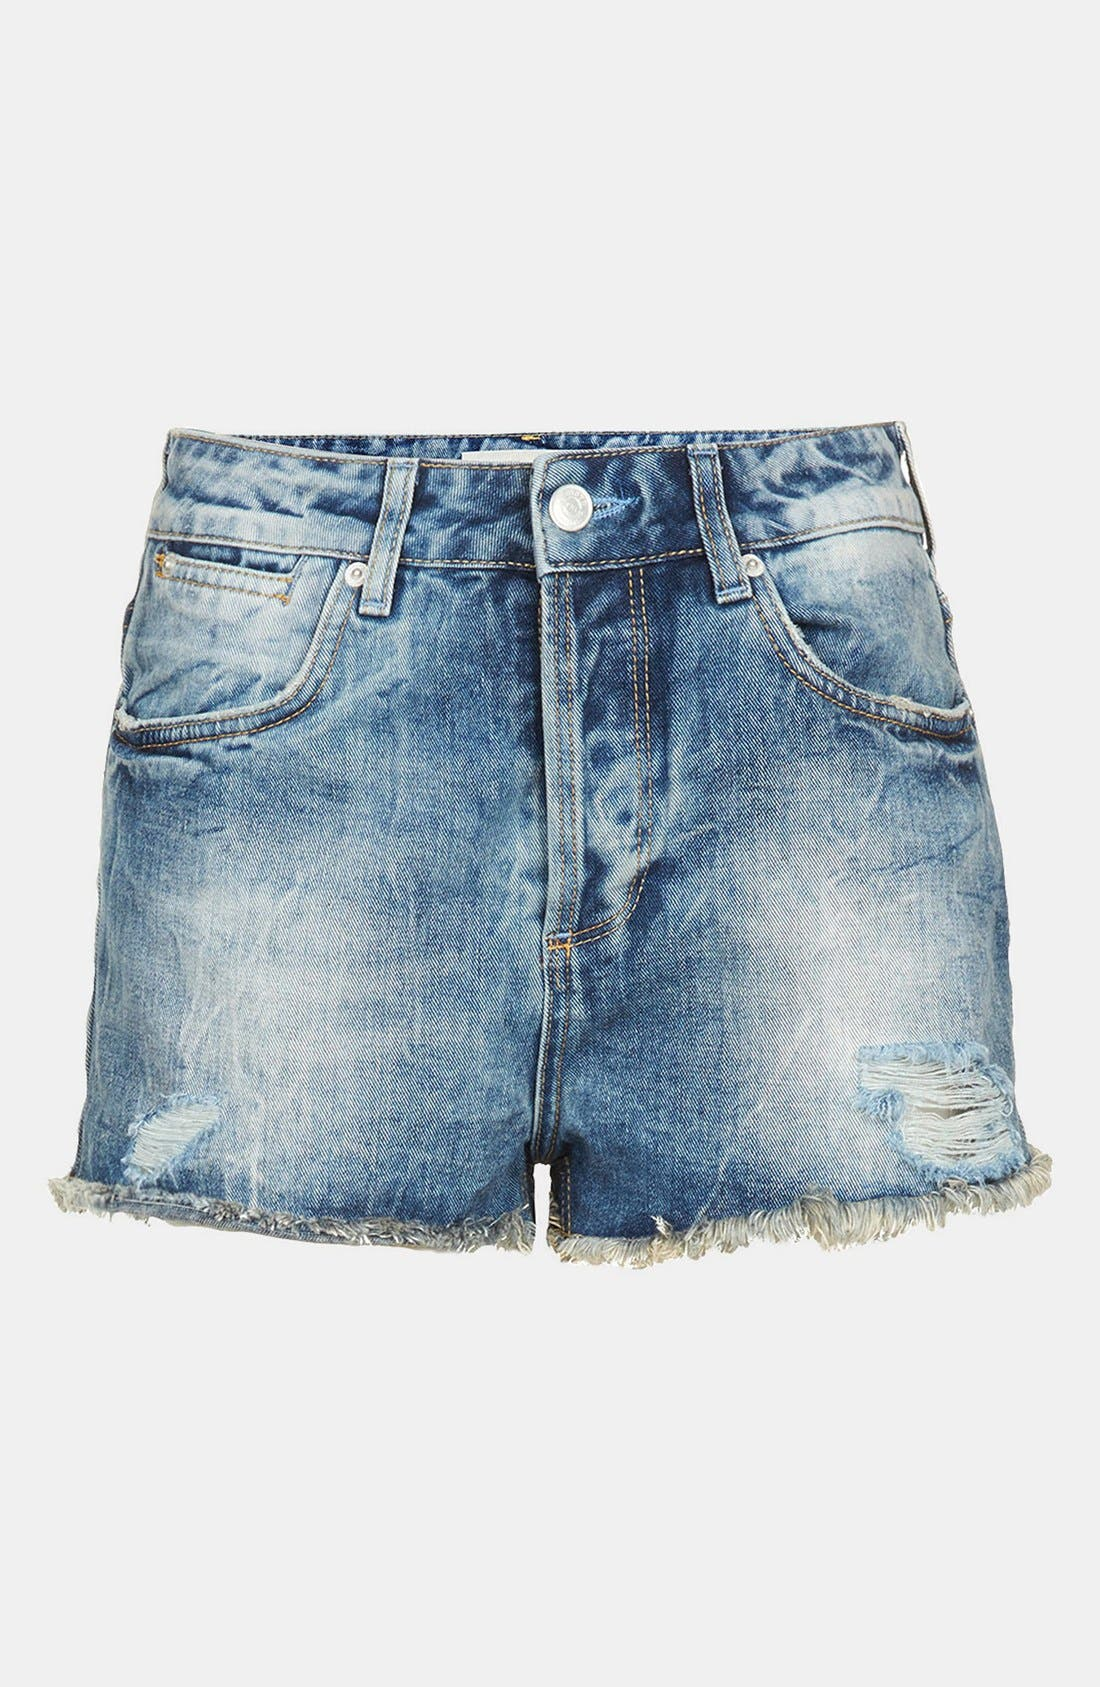 'Waterless Ruthie' Destroyed Cutoff Denim Shorts,                             Alternate thumbnail 3, color,                             420